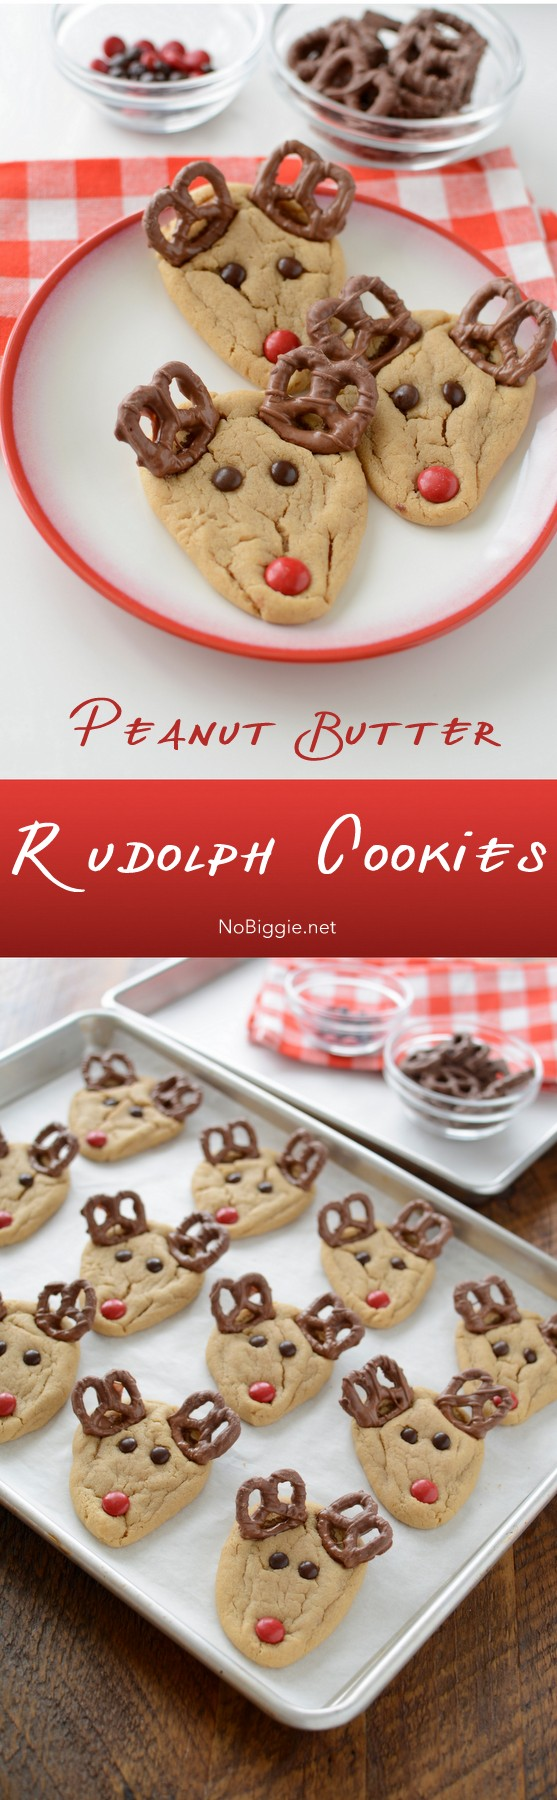 Peanut Butter Rudolph Cookies - delicious and cute cookies for your christmas party or a rudolph kind of night. #rudolph #cookies #peanutbutter #peanutbuttercookies #christmascookies